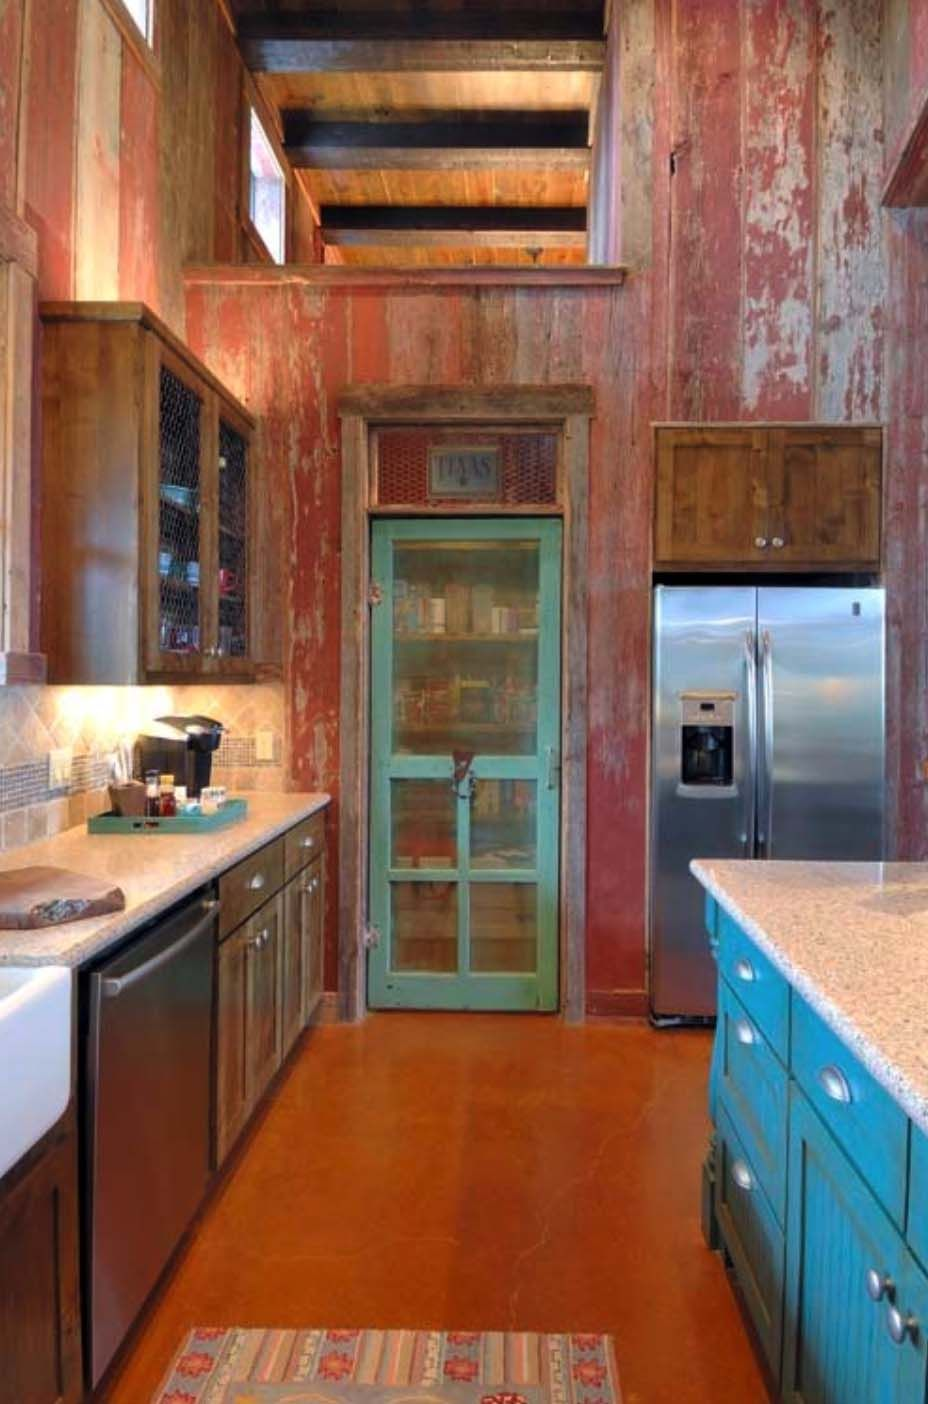 Small Custom Homes Texas Ranch Style Homes Custom Ranch Homes Design Interior Designs: Rustic Ranch House Designed For Family Gatherings In Texas